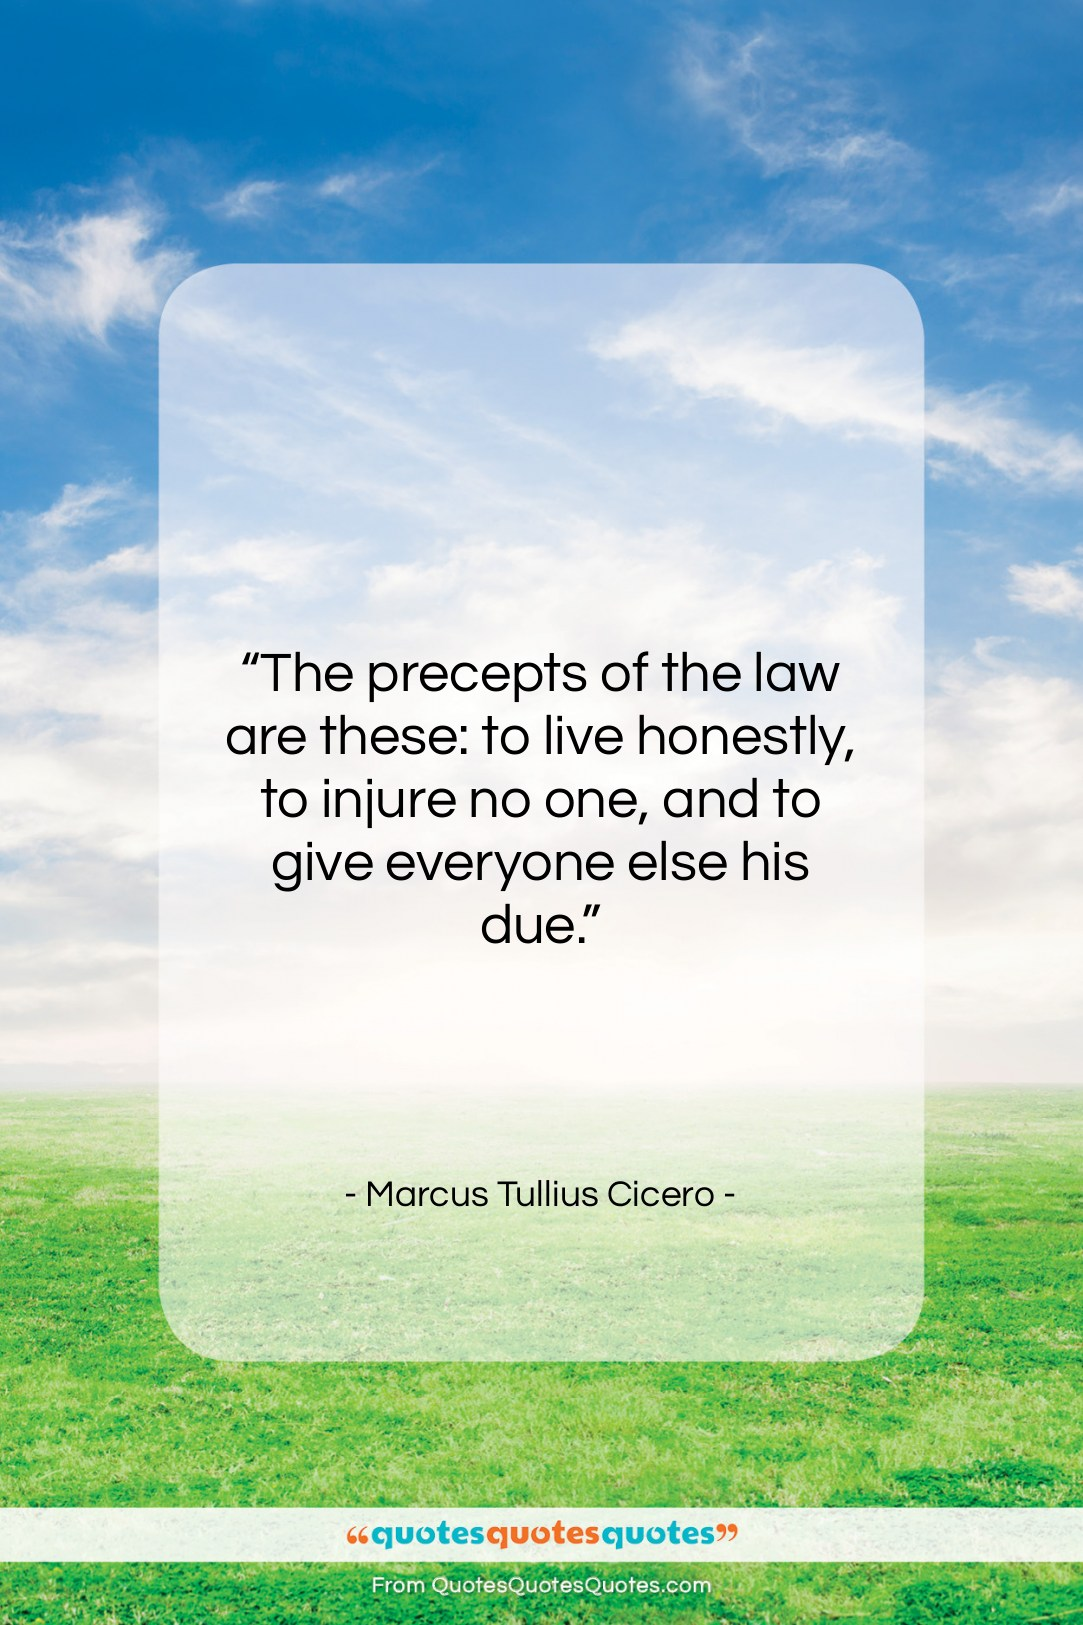 """Marcus Tullius Cicero quote: """"The precepts of the law are these:…""""- at QuotesQuotesQuotes.com"""